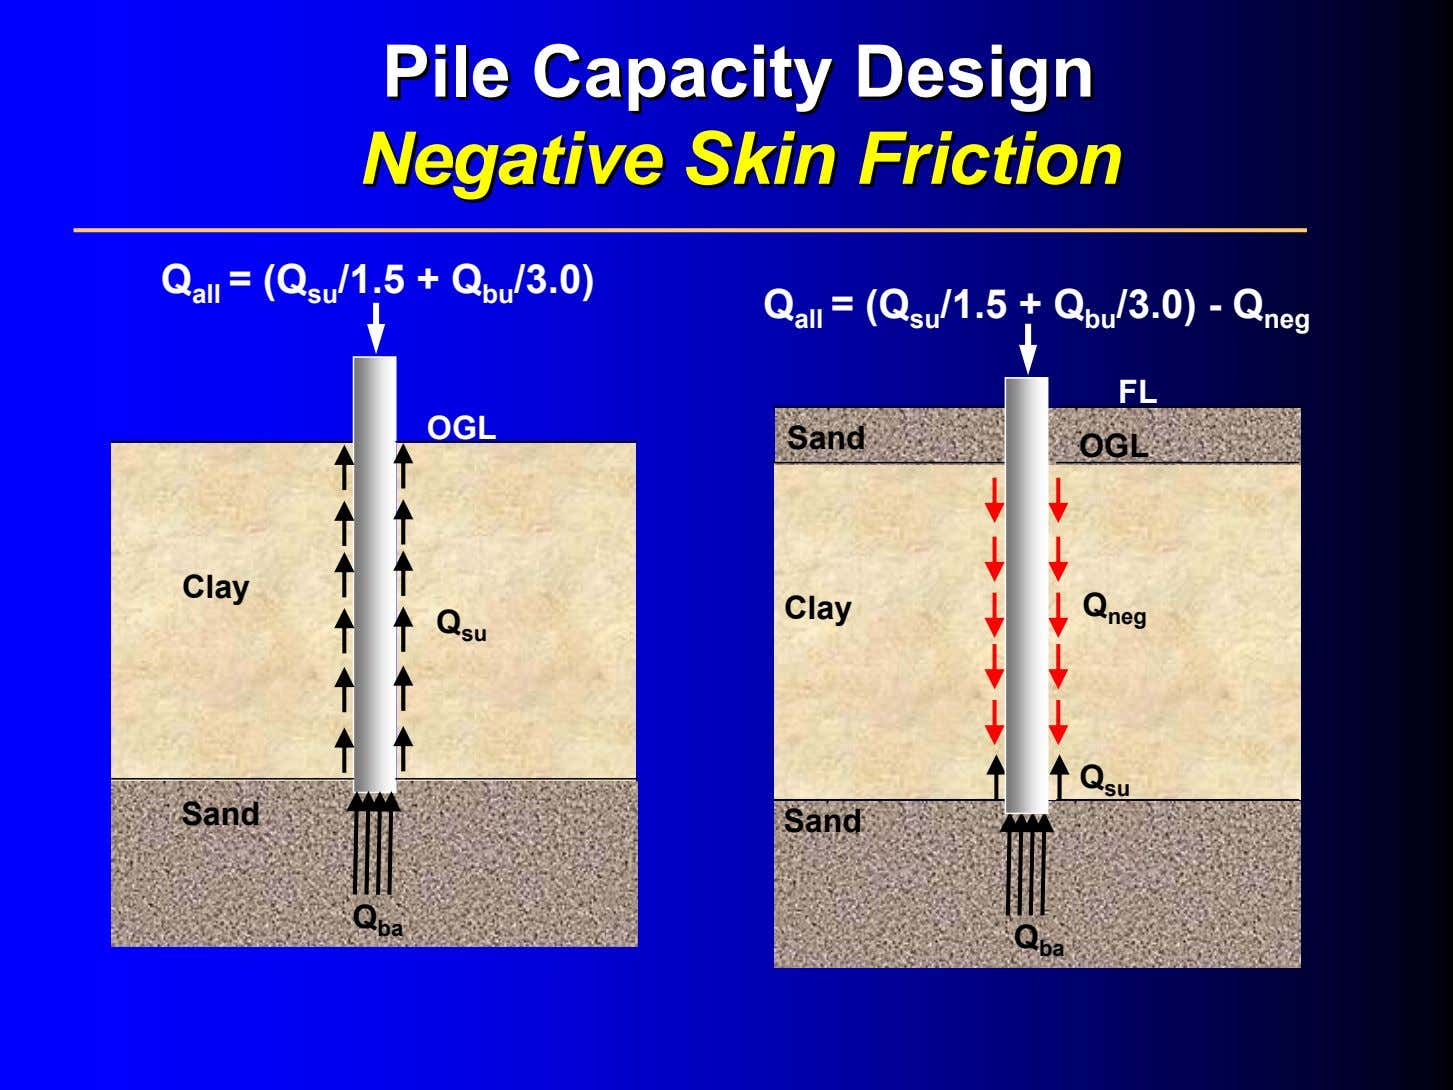 PilePile CapacityCapacity DesignDesign NegativeNegative SkinSkin FrictionFriction Q all = (Q su /1.5 + Q bu